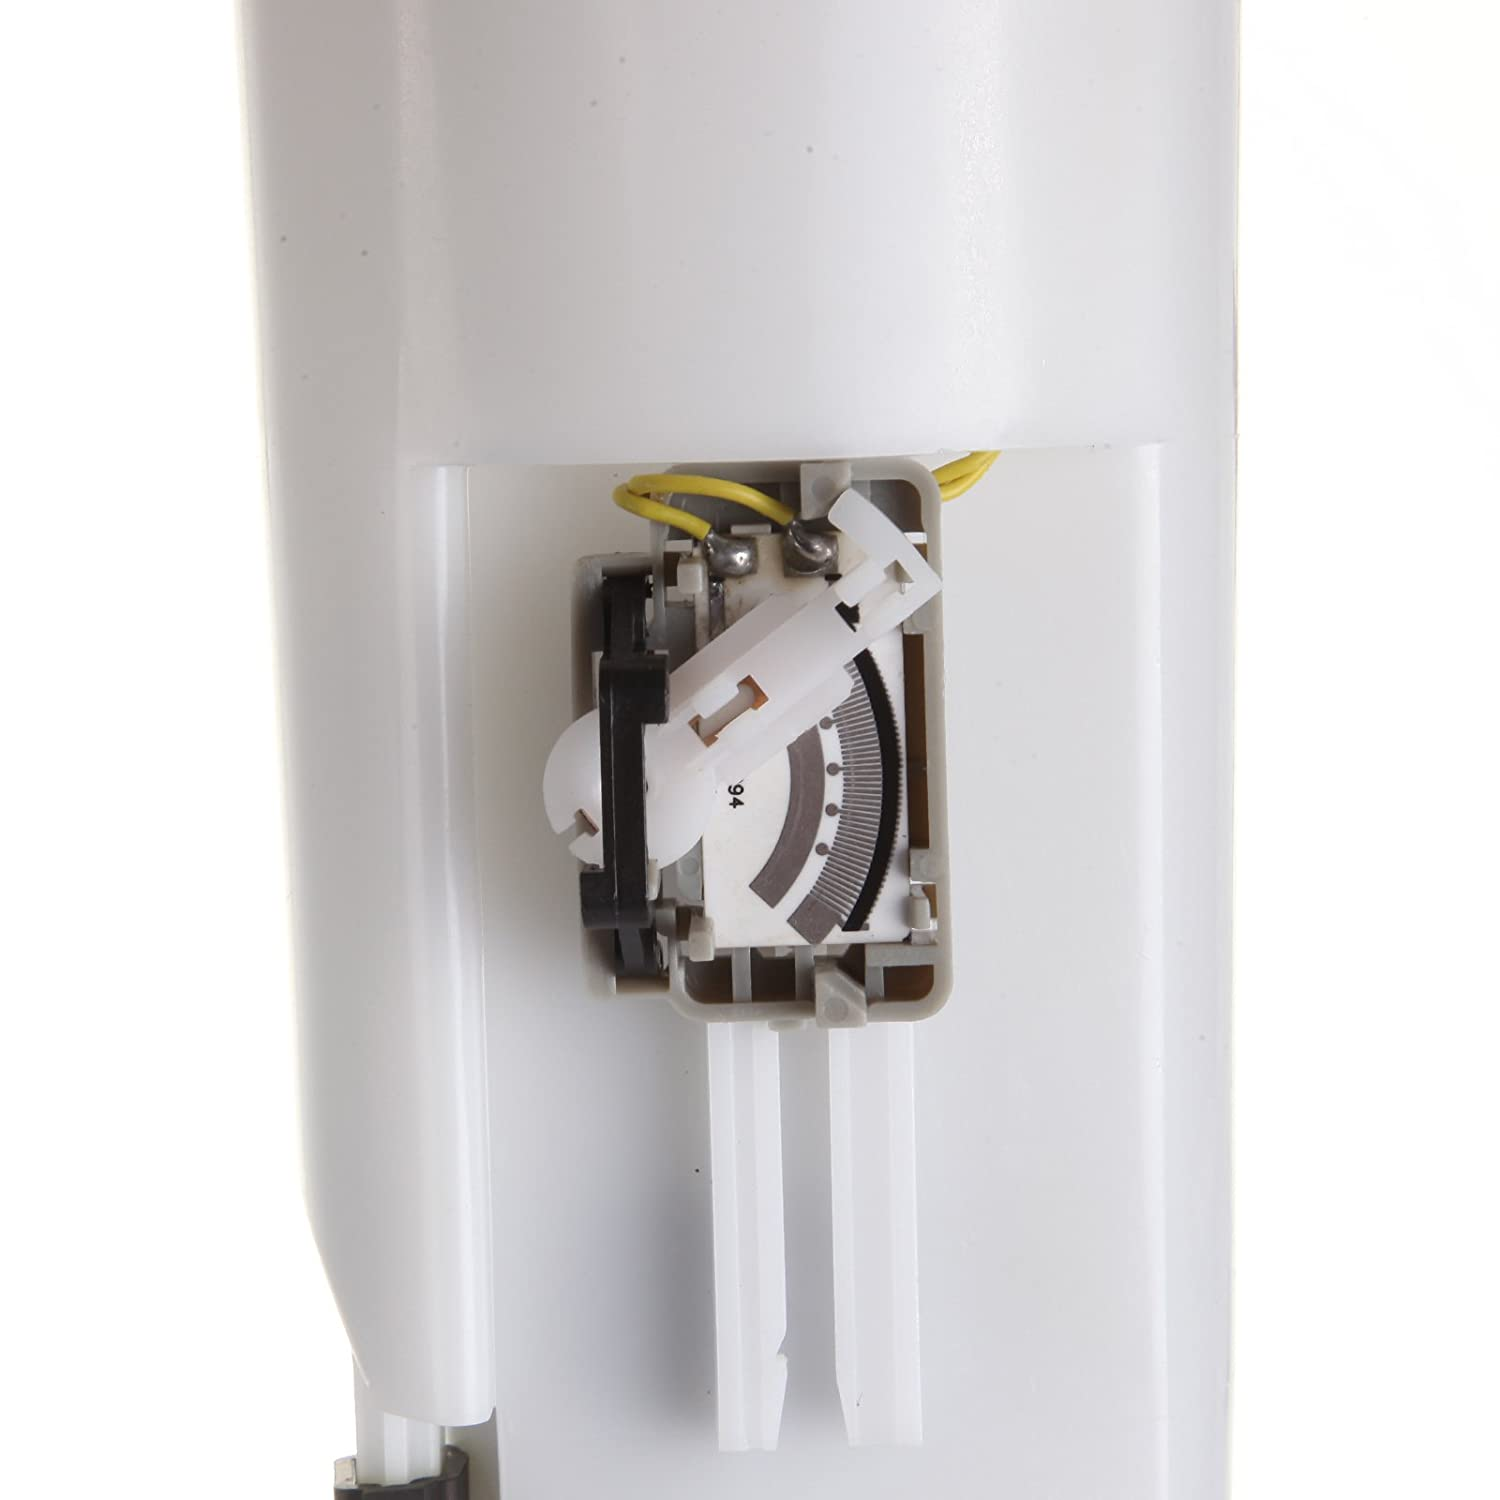 SCITOO E7146M Fuel Pump Electrical Assembly High Performance fit Chrysler Town Country Voyager Dodge Grand Caravan 065150-5206-1137391